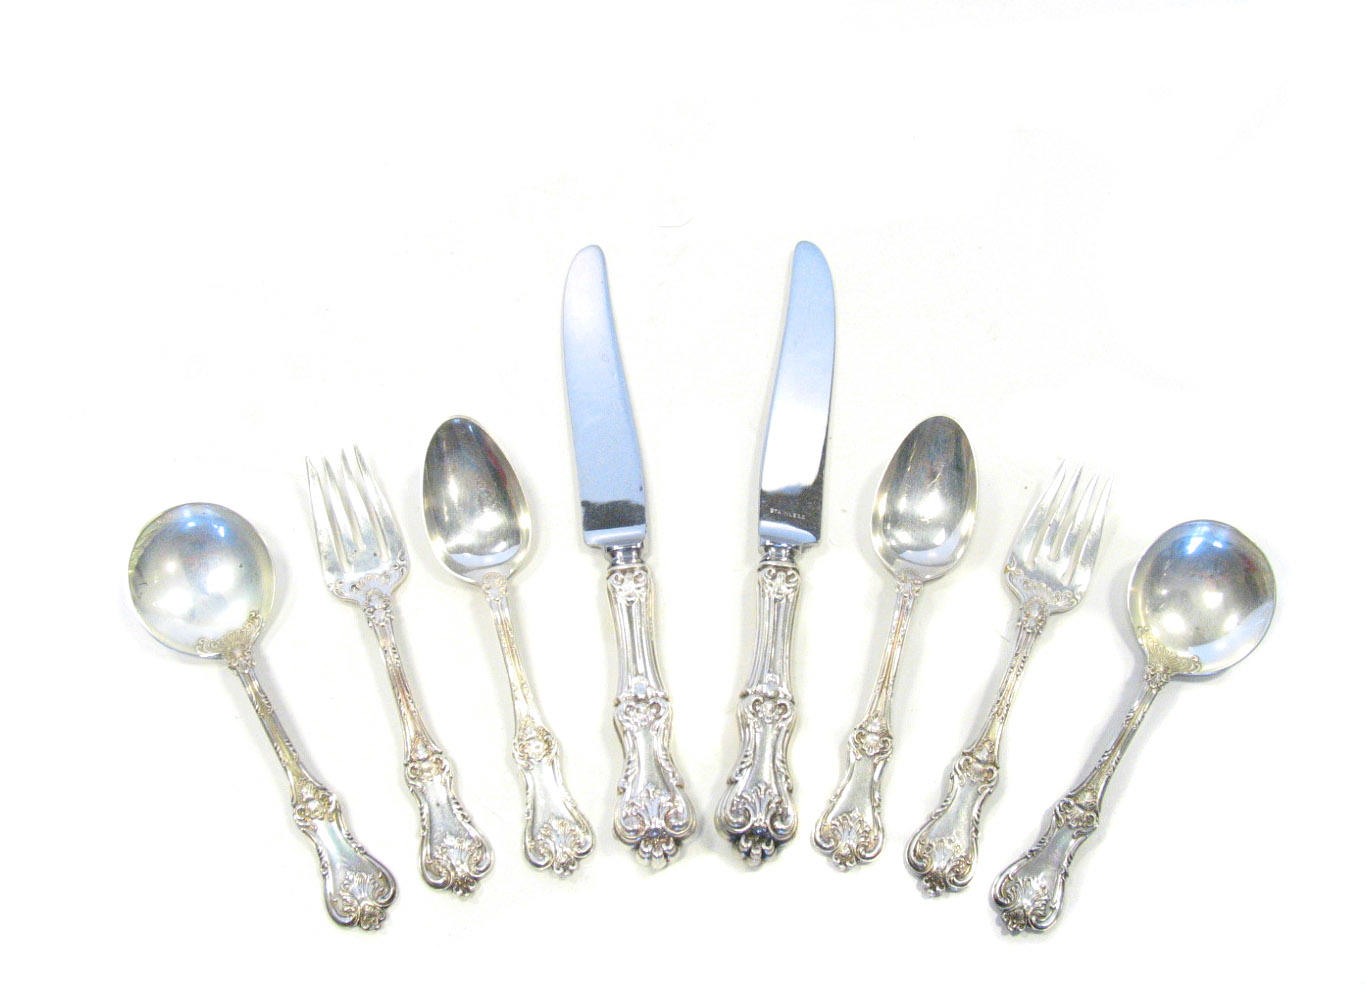 Federal Cotillion By Frank Smith Sterling Silver Dinner Setting 4-Piece